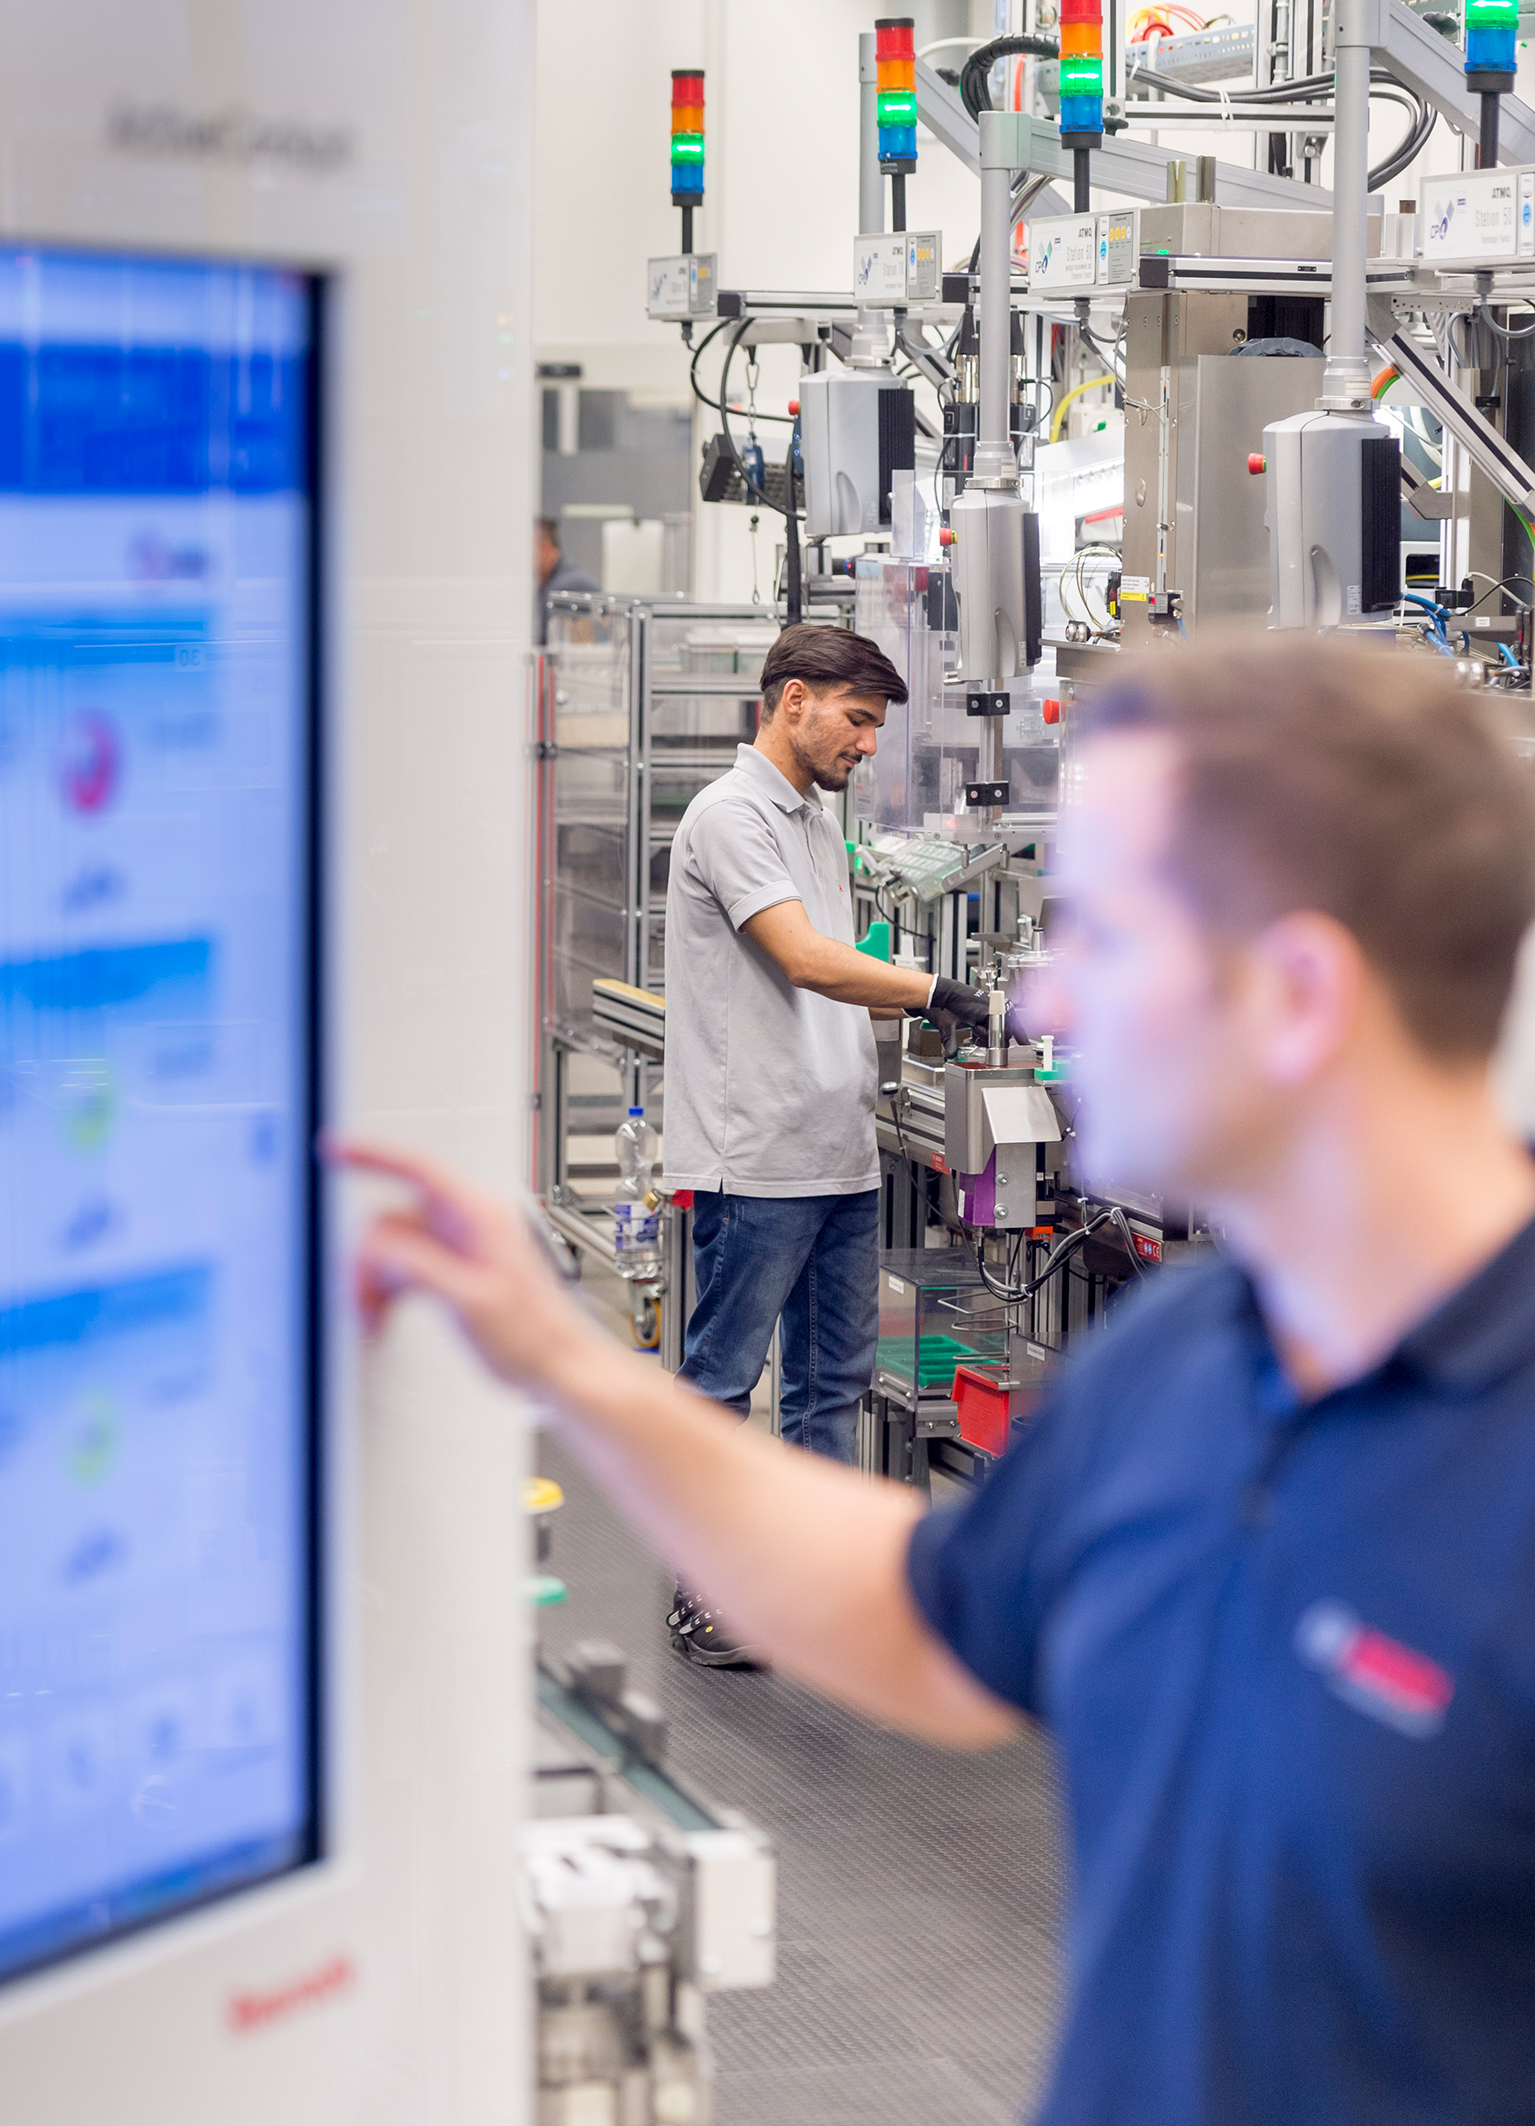 Industry 4.0 at Bosch – Active Cockpit